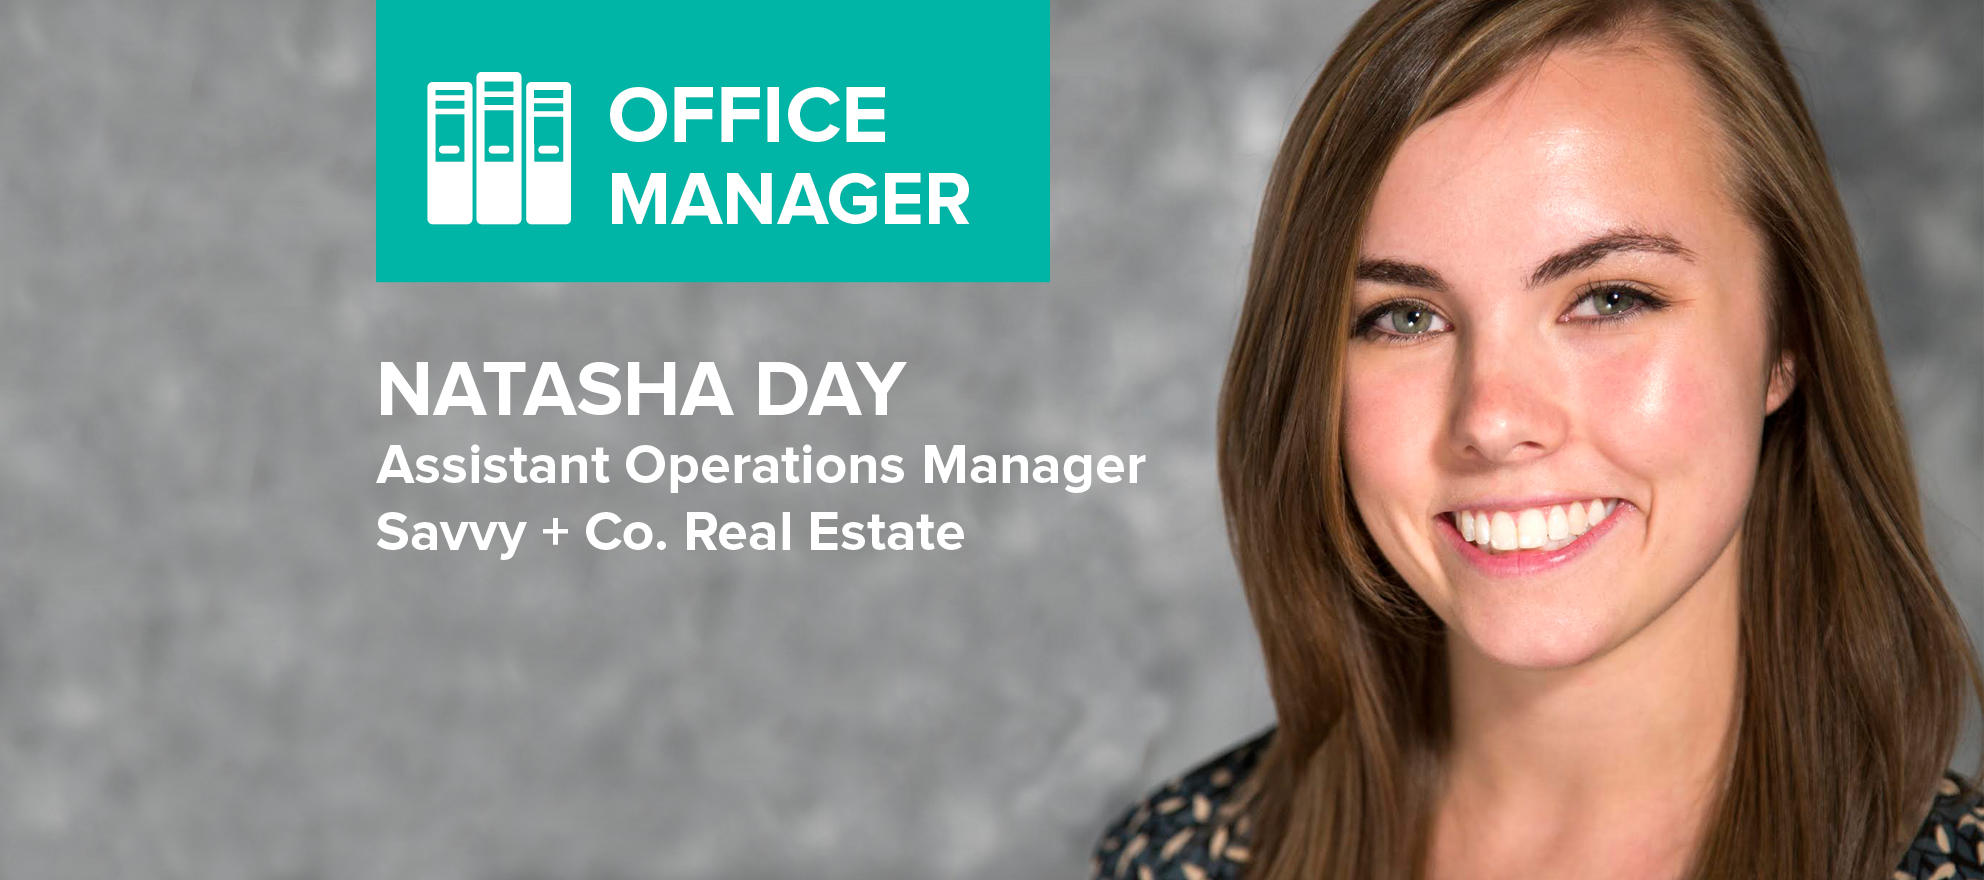 Natasha Day on selling a home while managing an office